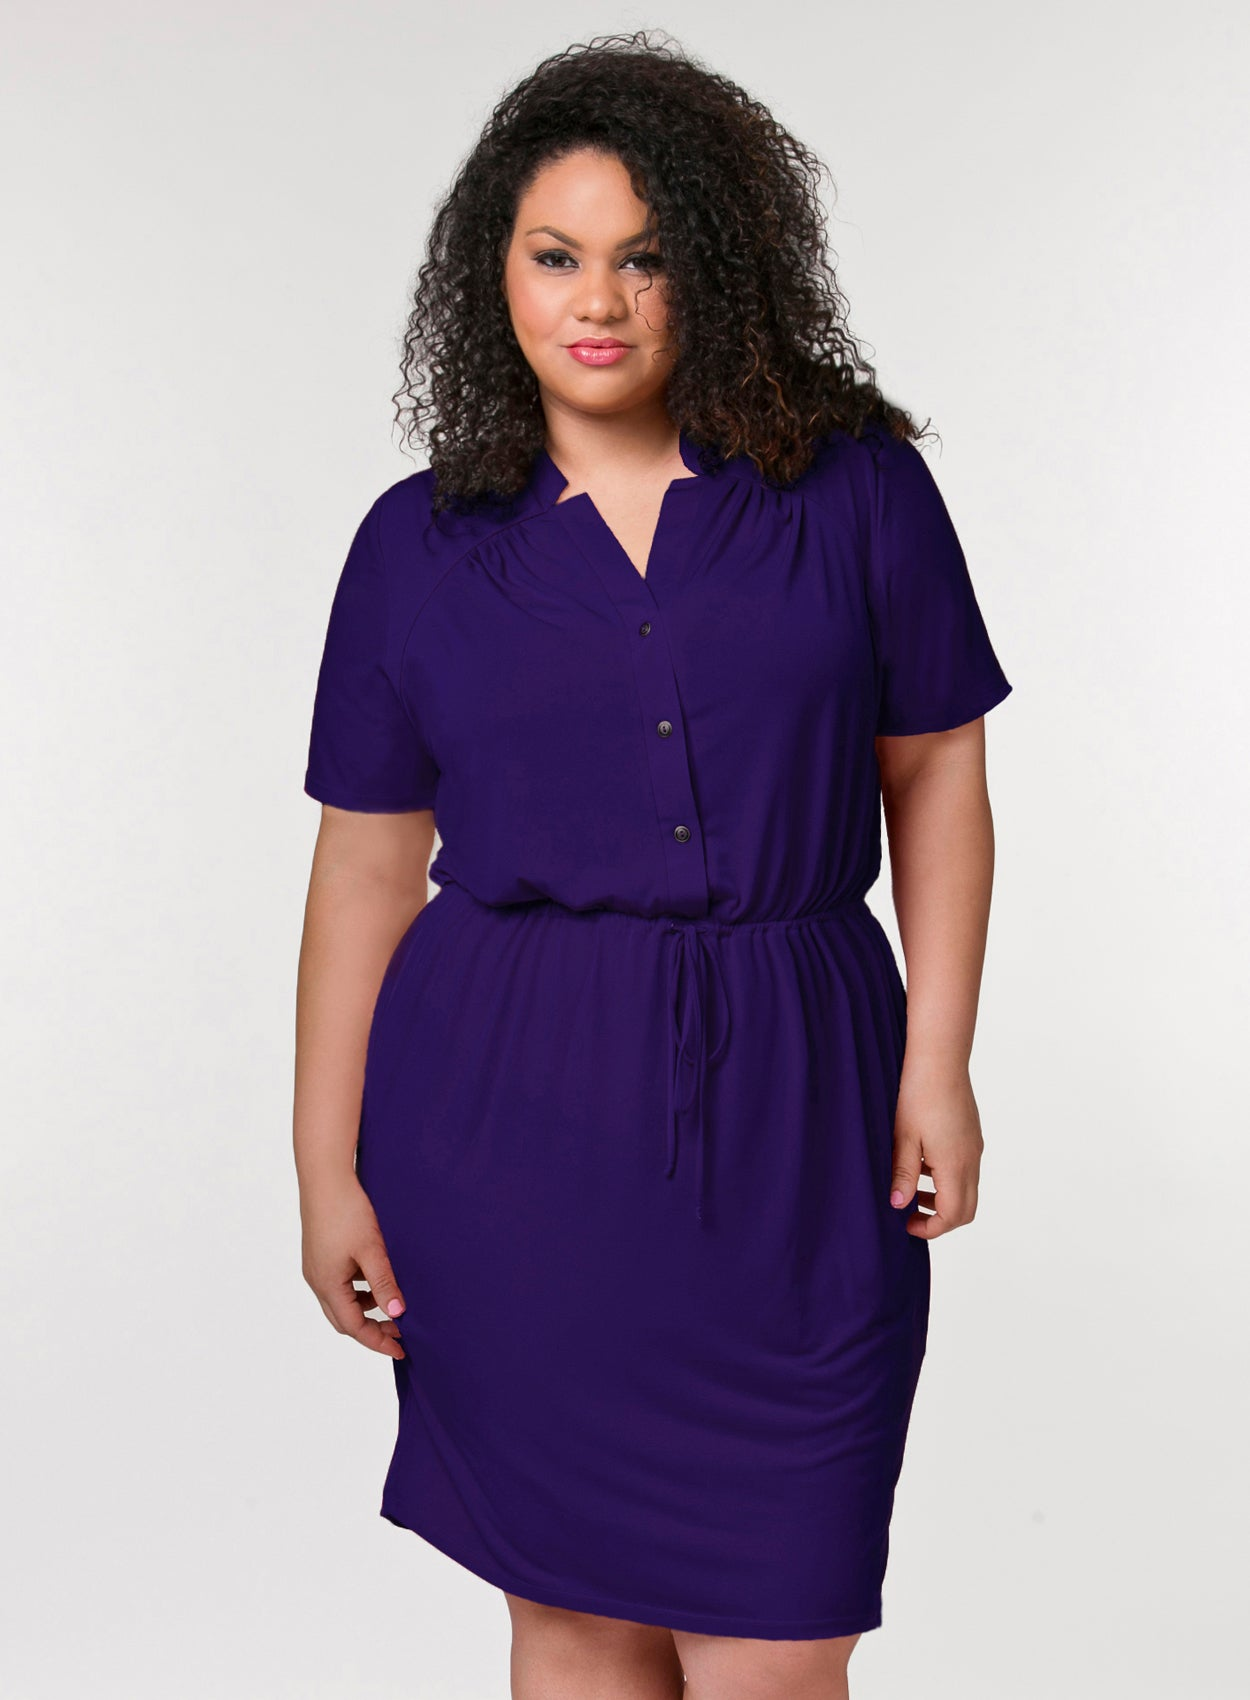 CURVY PURPLE PLUS SIZE BUTTON FRONT SHIRT DRESS WITH SLEEVES AND DRAWSTRING